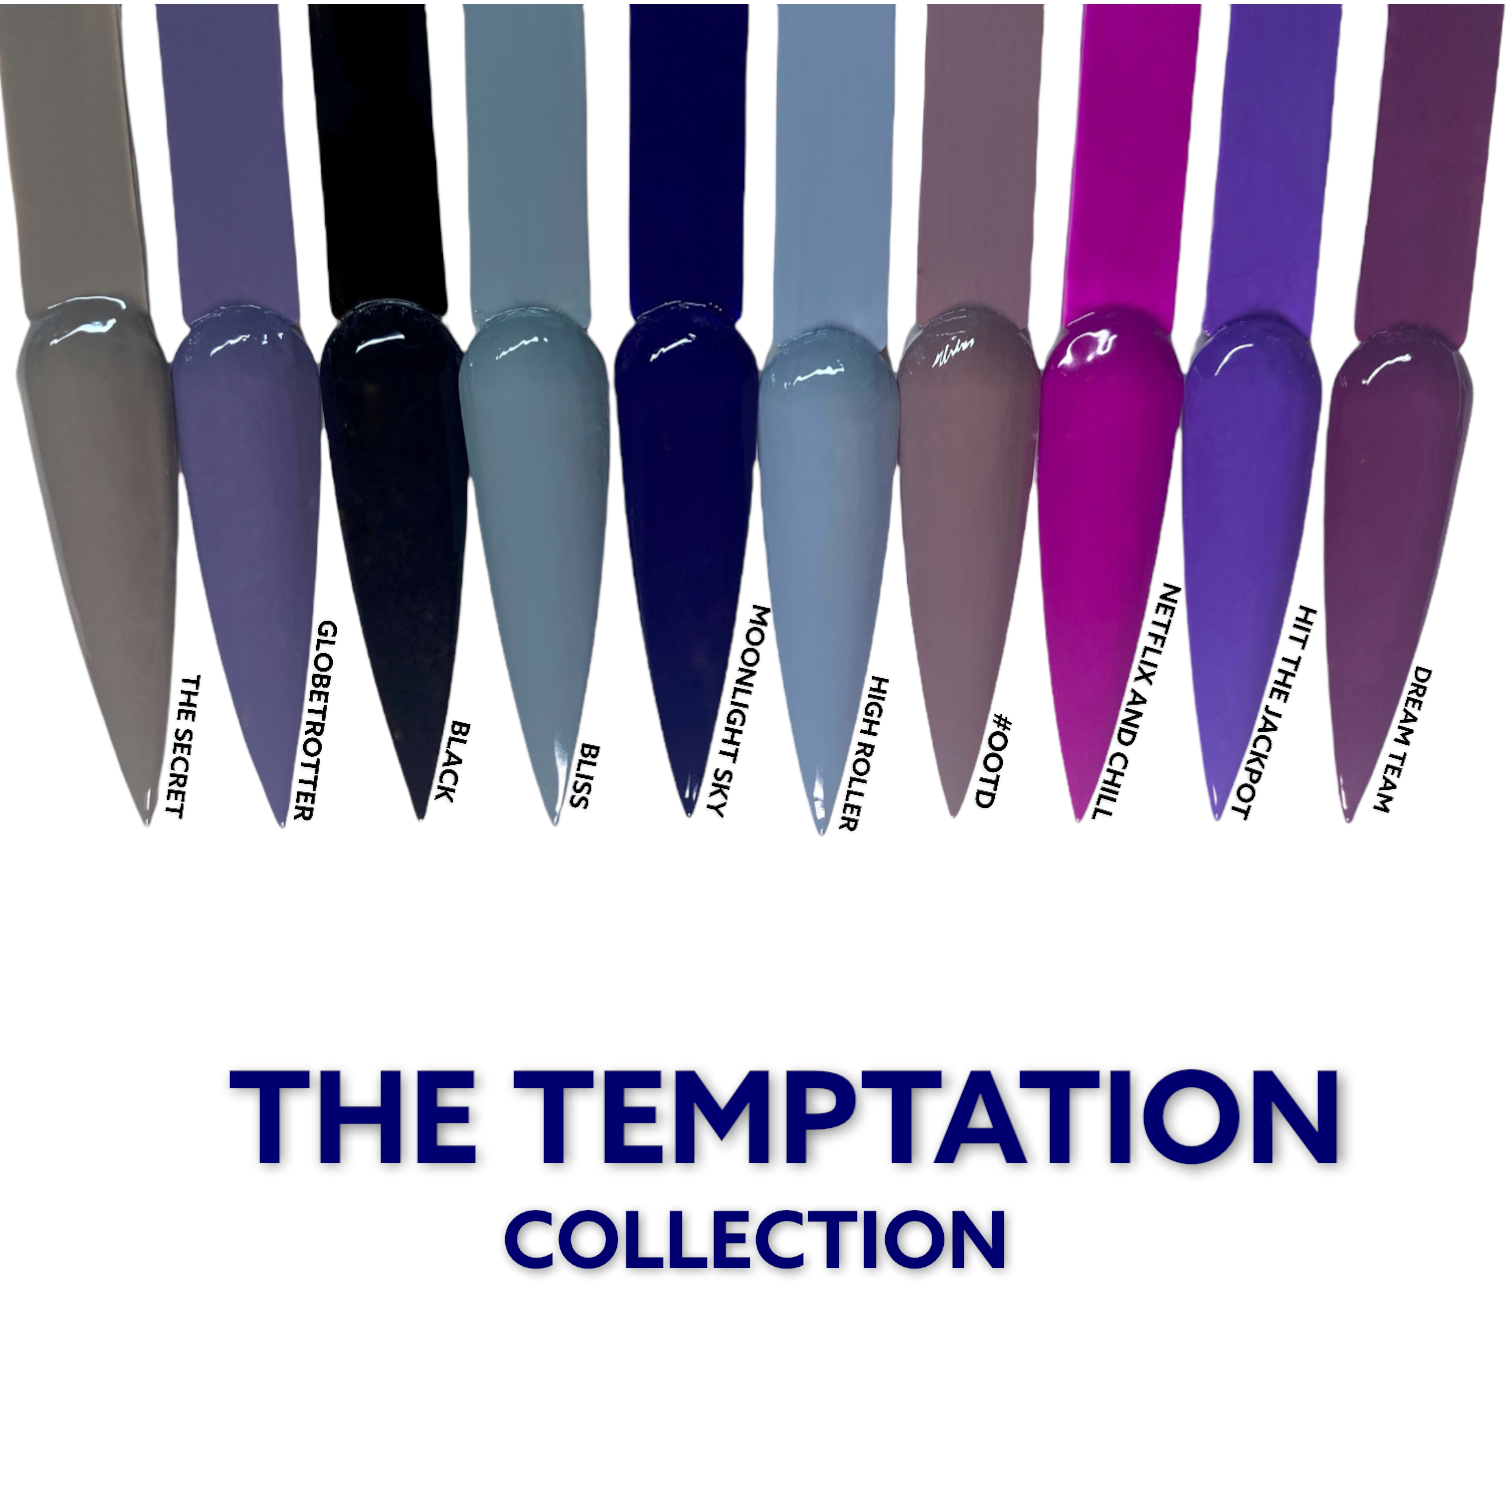 The Temptation Collection